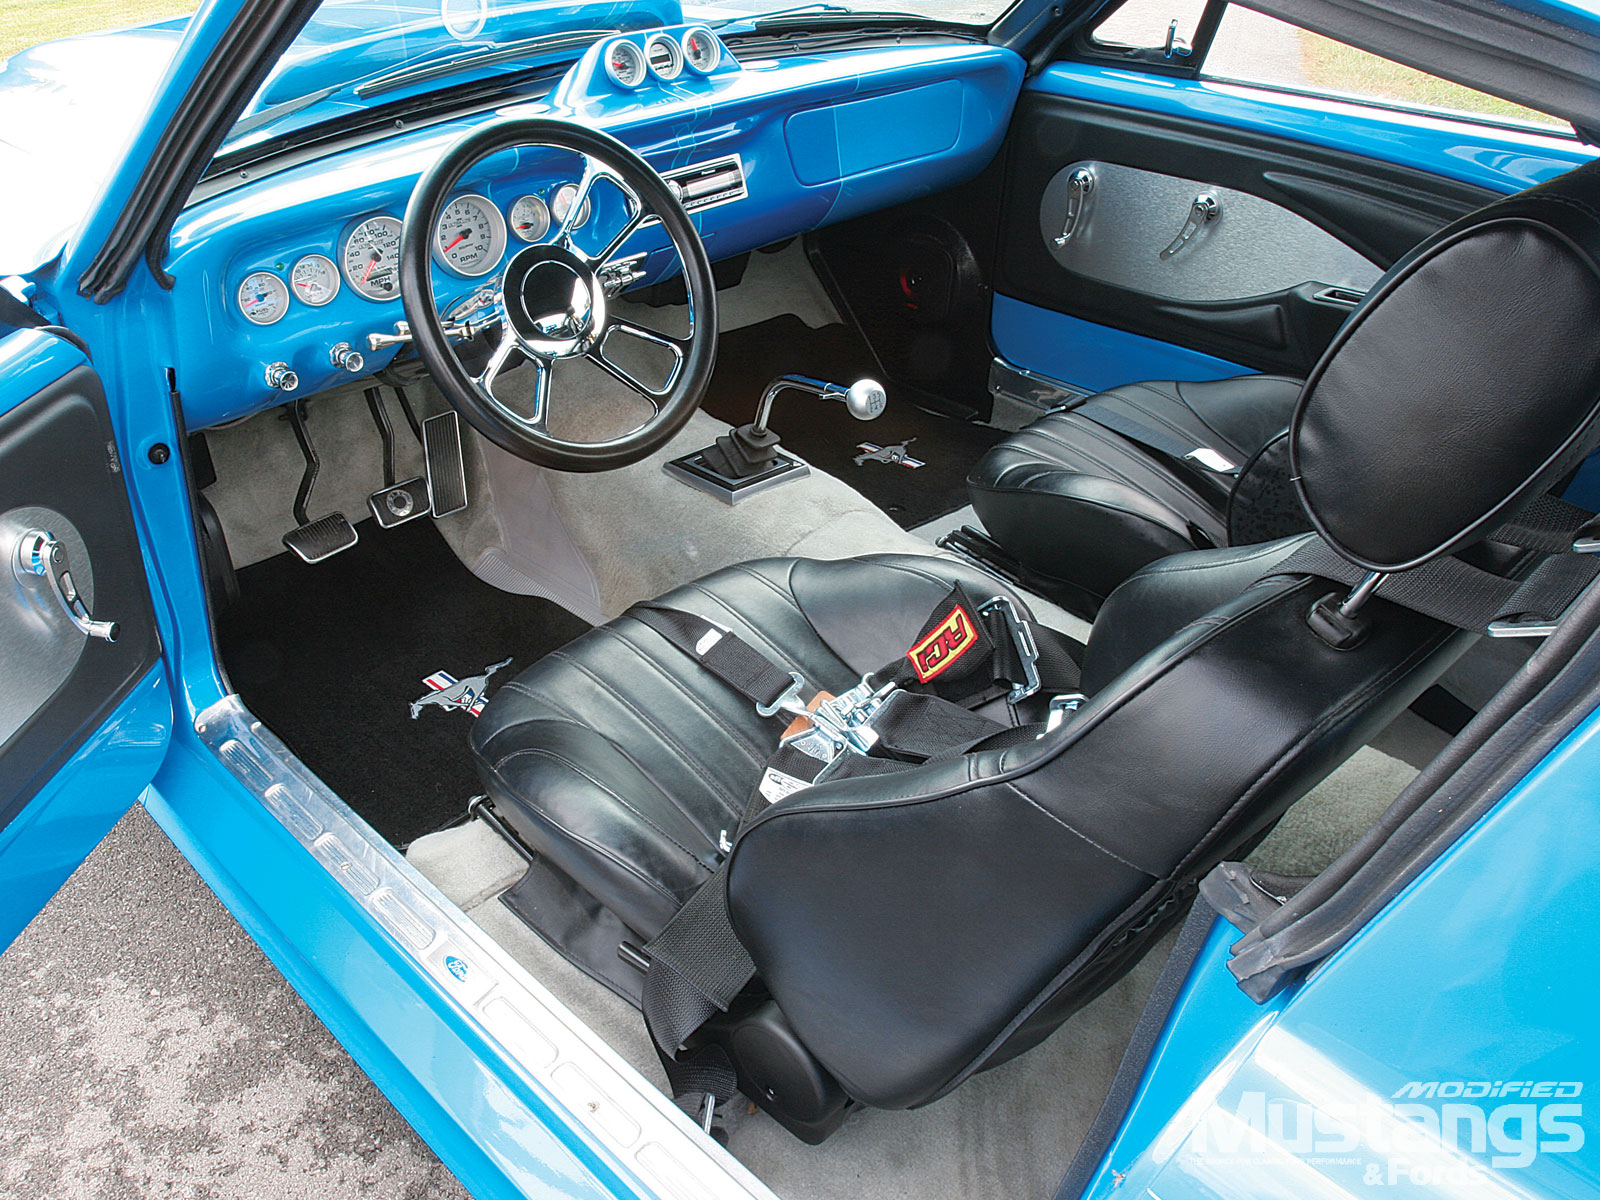 1965 Mustang Fastback Interior View